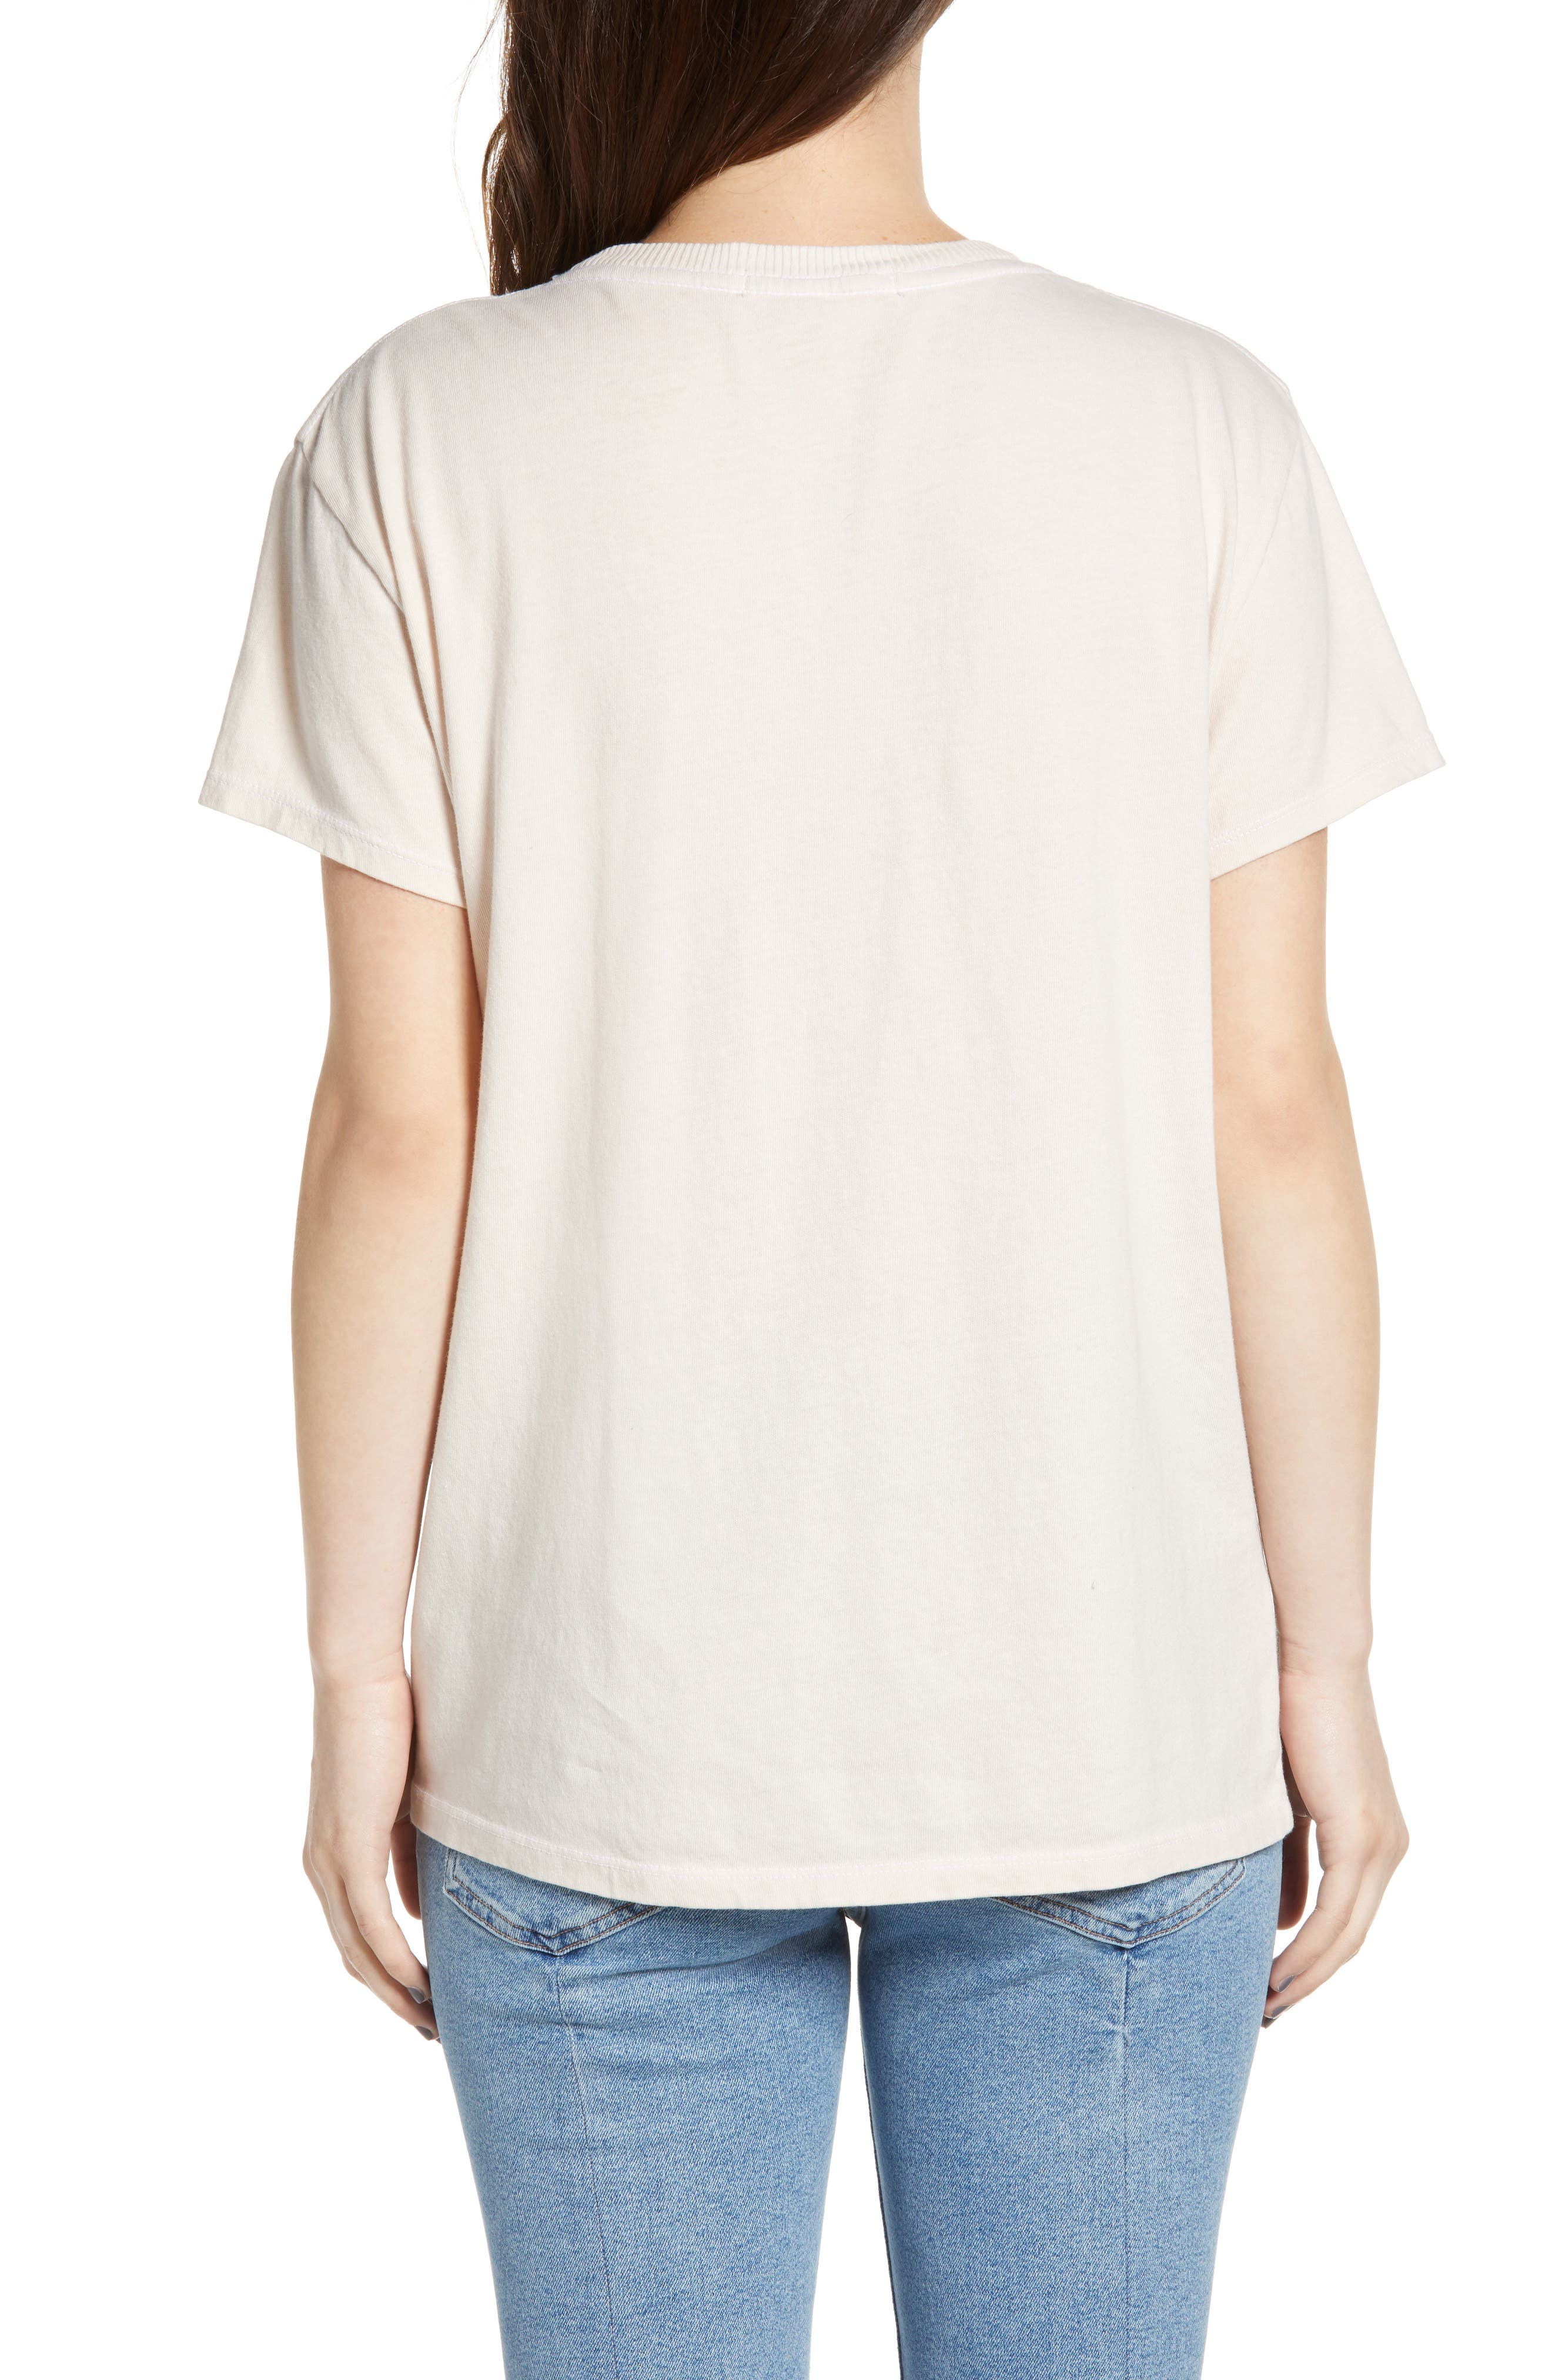 Star Wars<sup>™</sup> Classic Tee,                             Alternate thumbnail 2, color,                             174